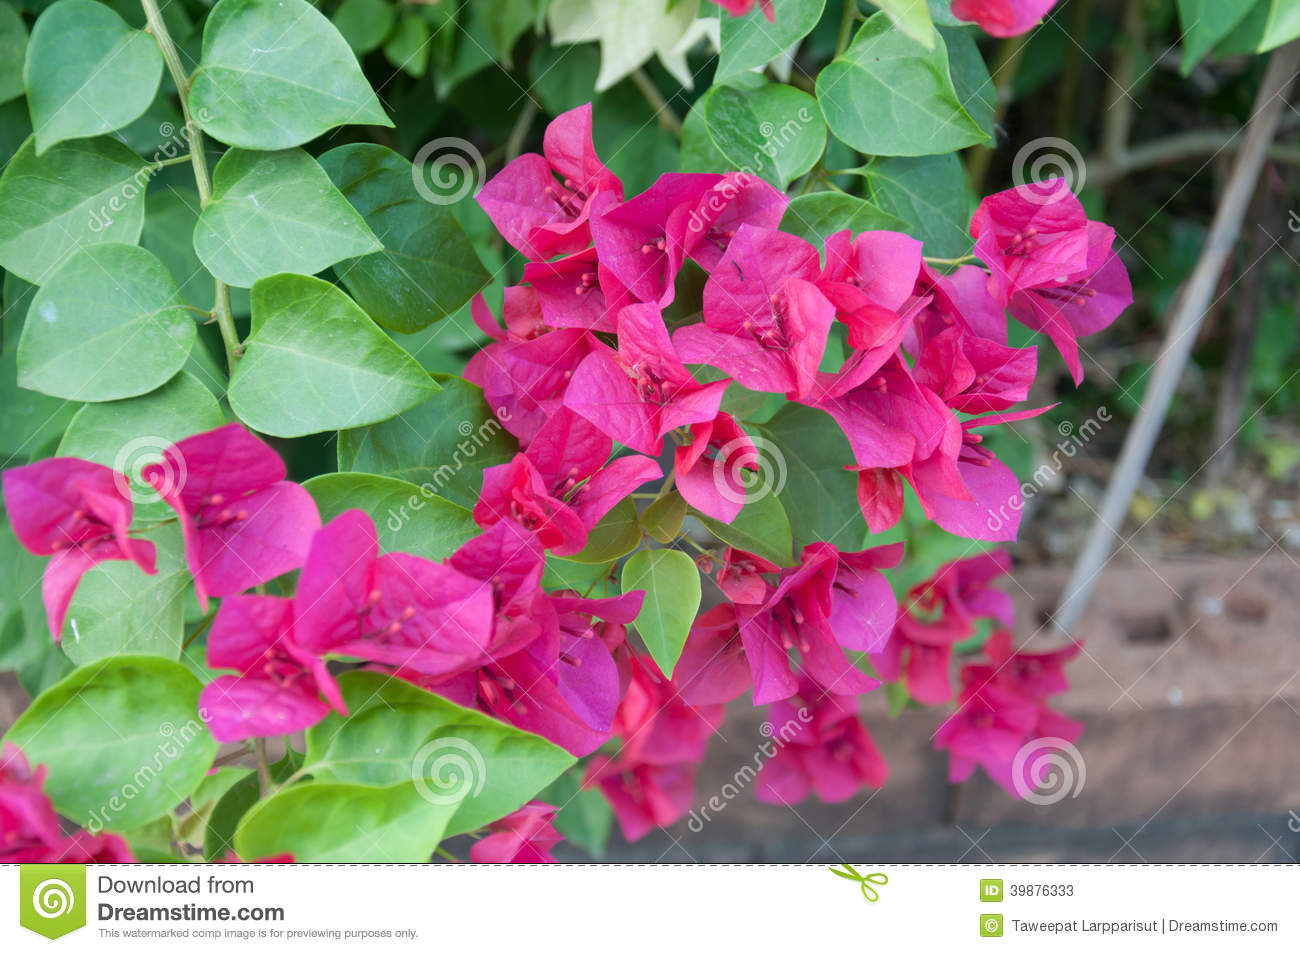 Pink bougainvillea stock image image of pink bougainvilleas 39876333 download pink bougainvillea stock image image of pink bougainvilleas 39876333 mightylinksfo